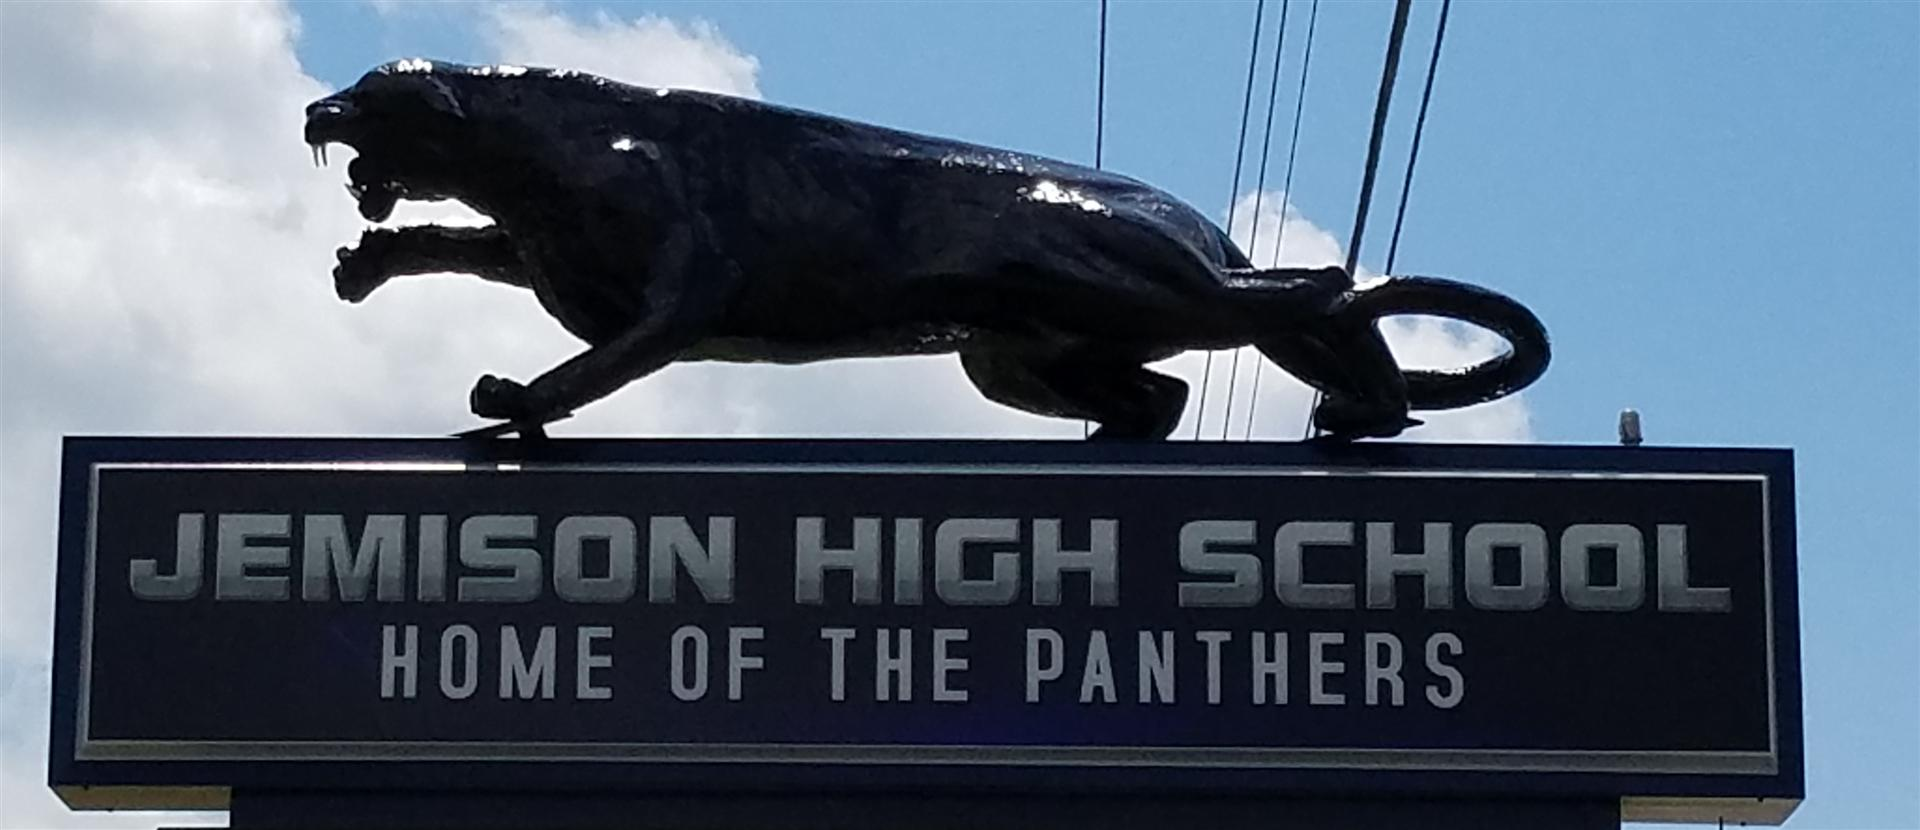 Jemison High School Sign with Panther statue